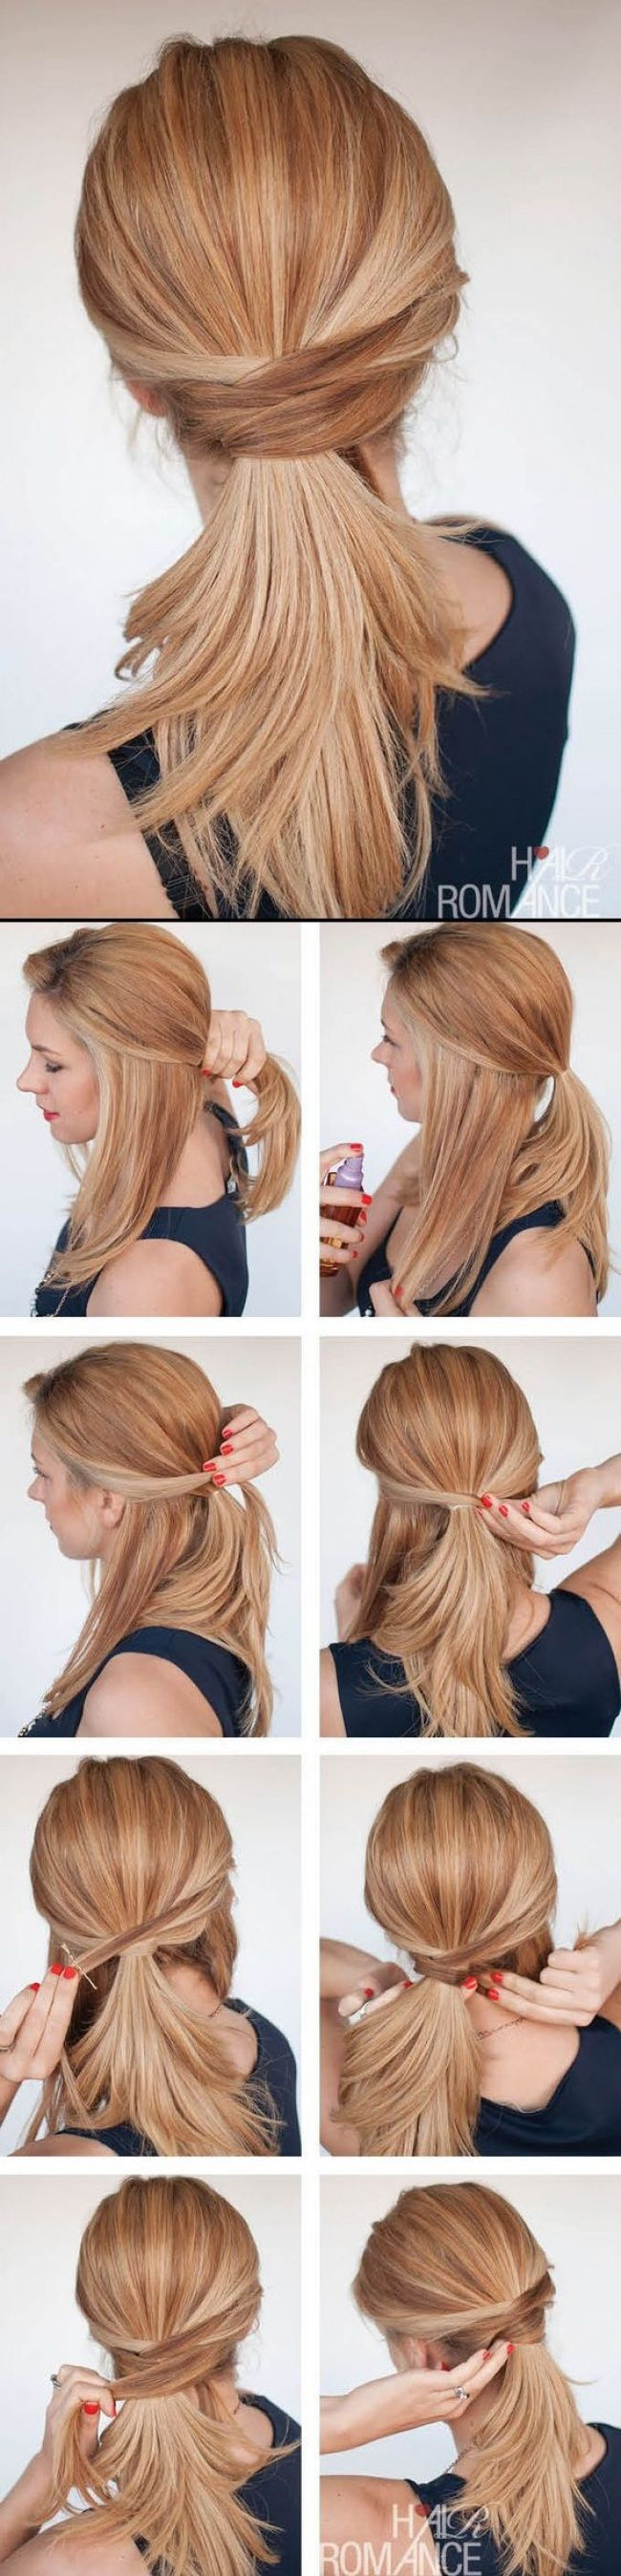 Trendy styling tips for beautiful hair styles hair haare saç style